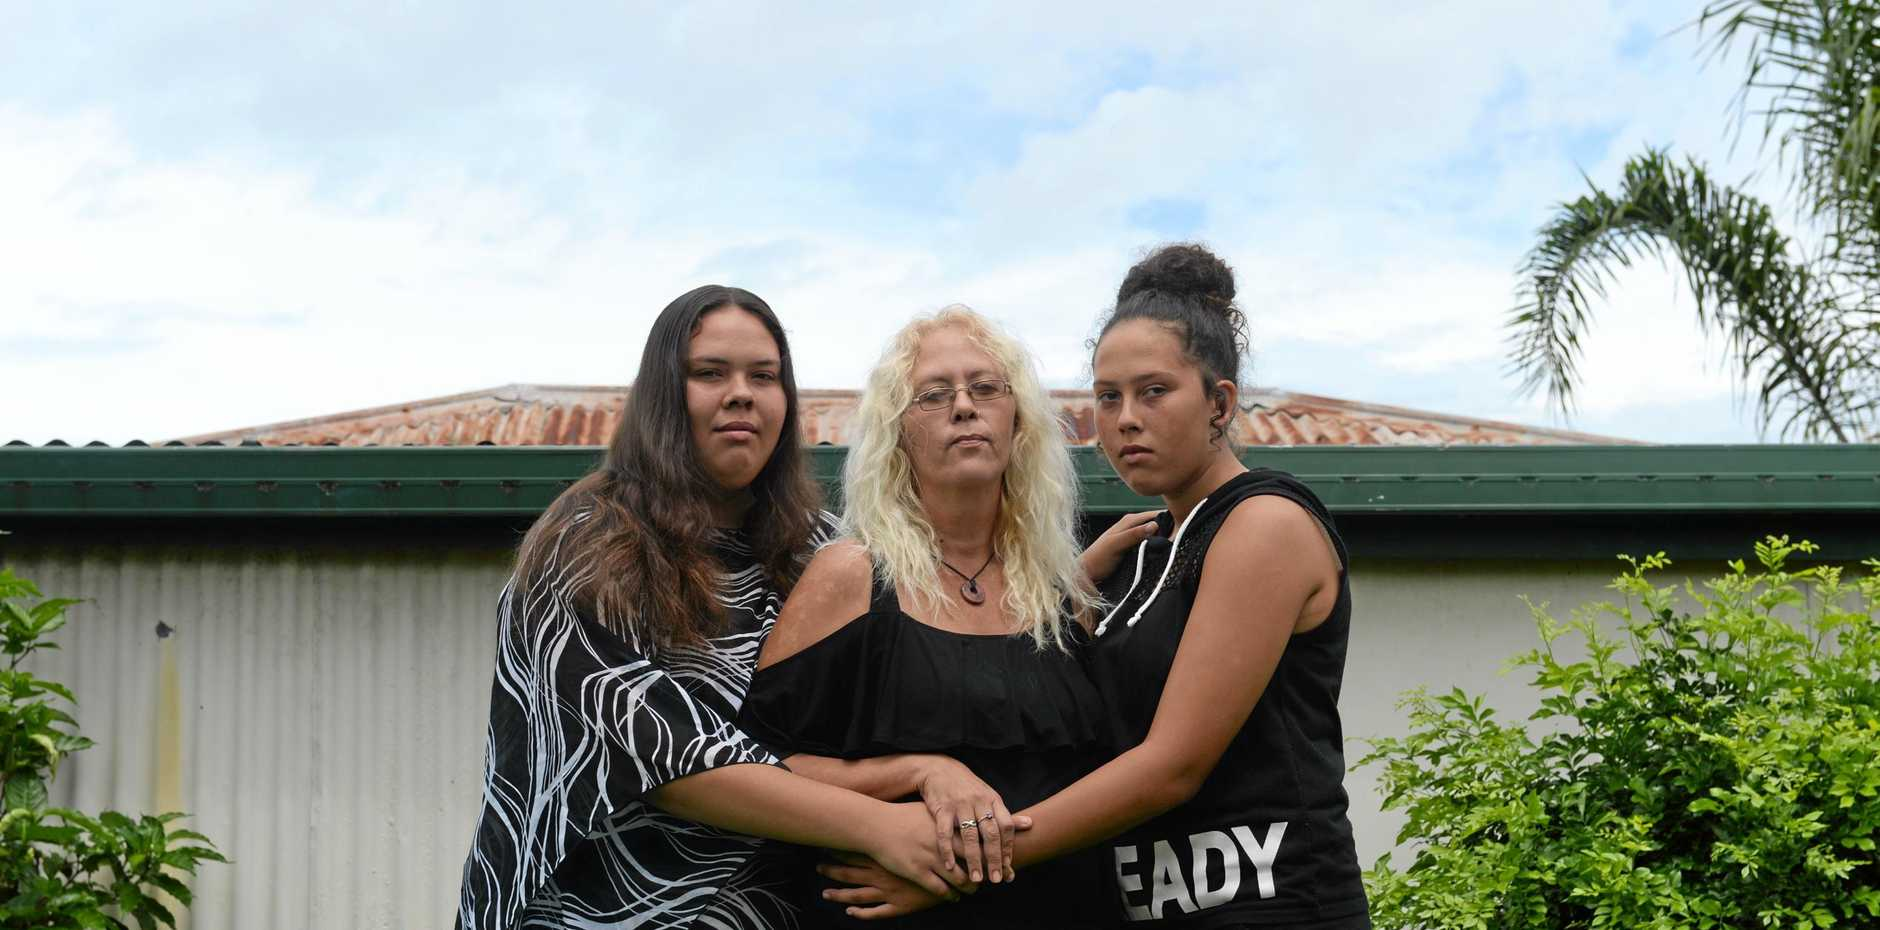 Julia Cavanagh, mum Jodi Craig, and younger sister Jayda Cavanagh in the backyard of their home.